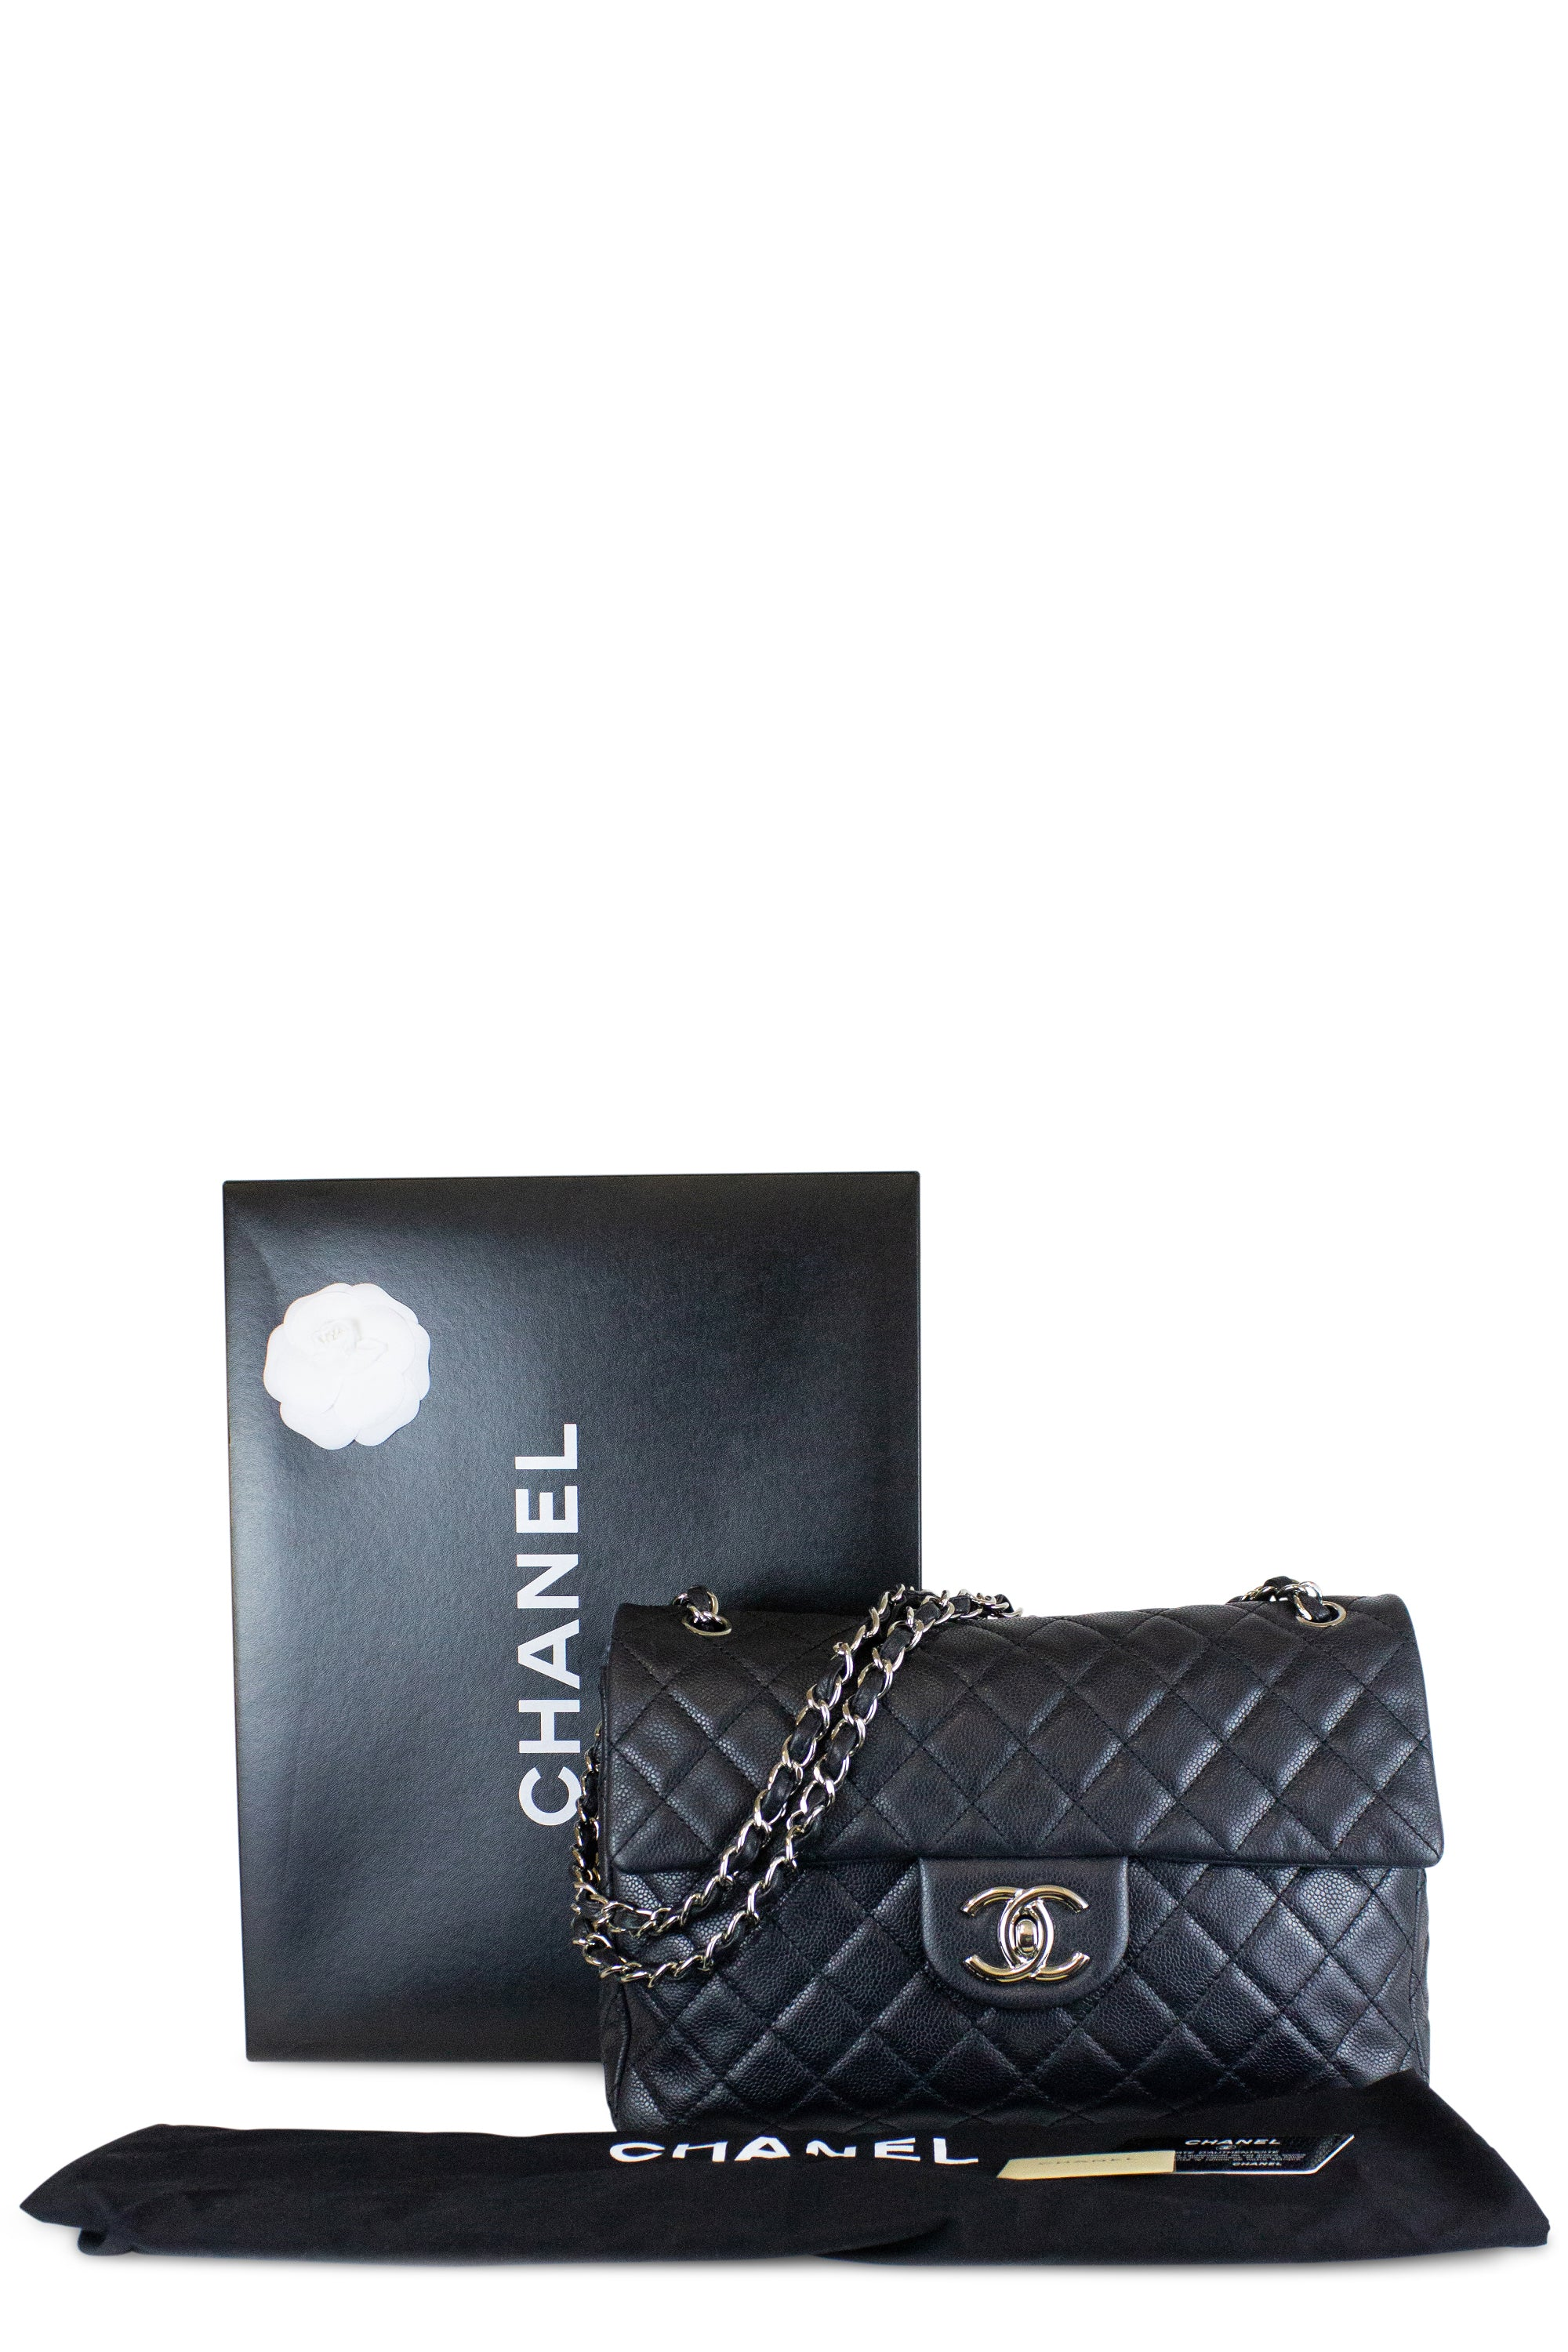 Chanel Jumbo Caviar Leather One Flap Bag Black Silver Hardware